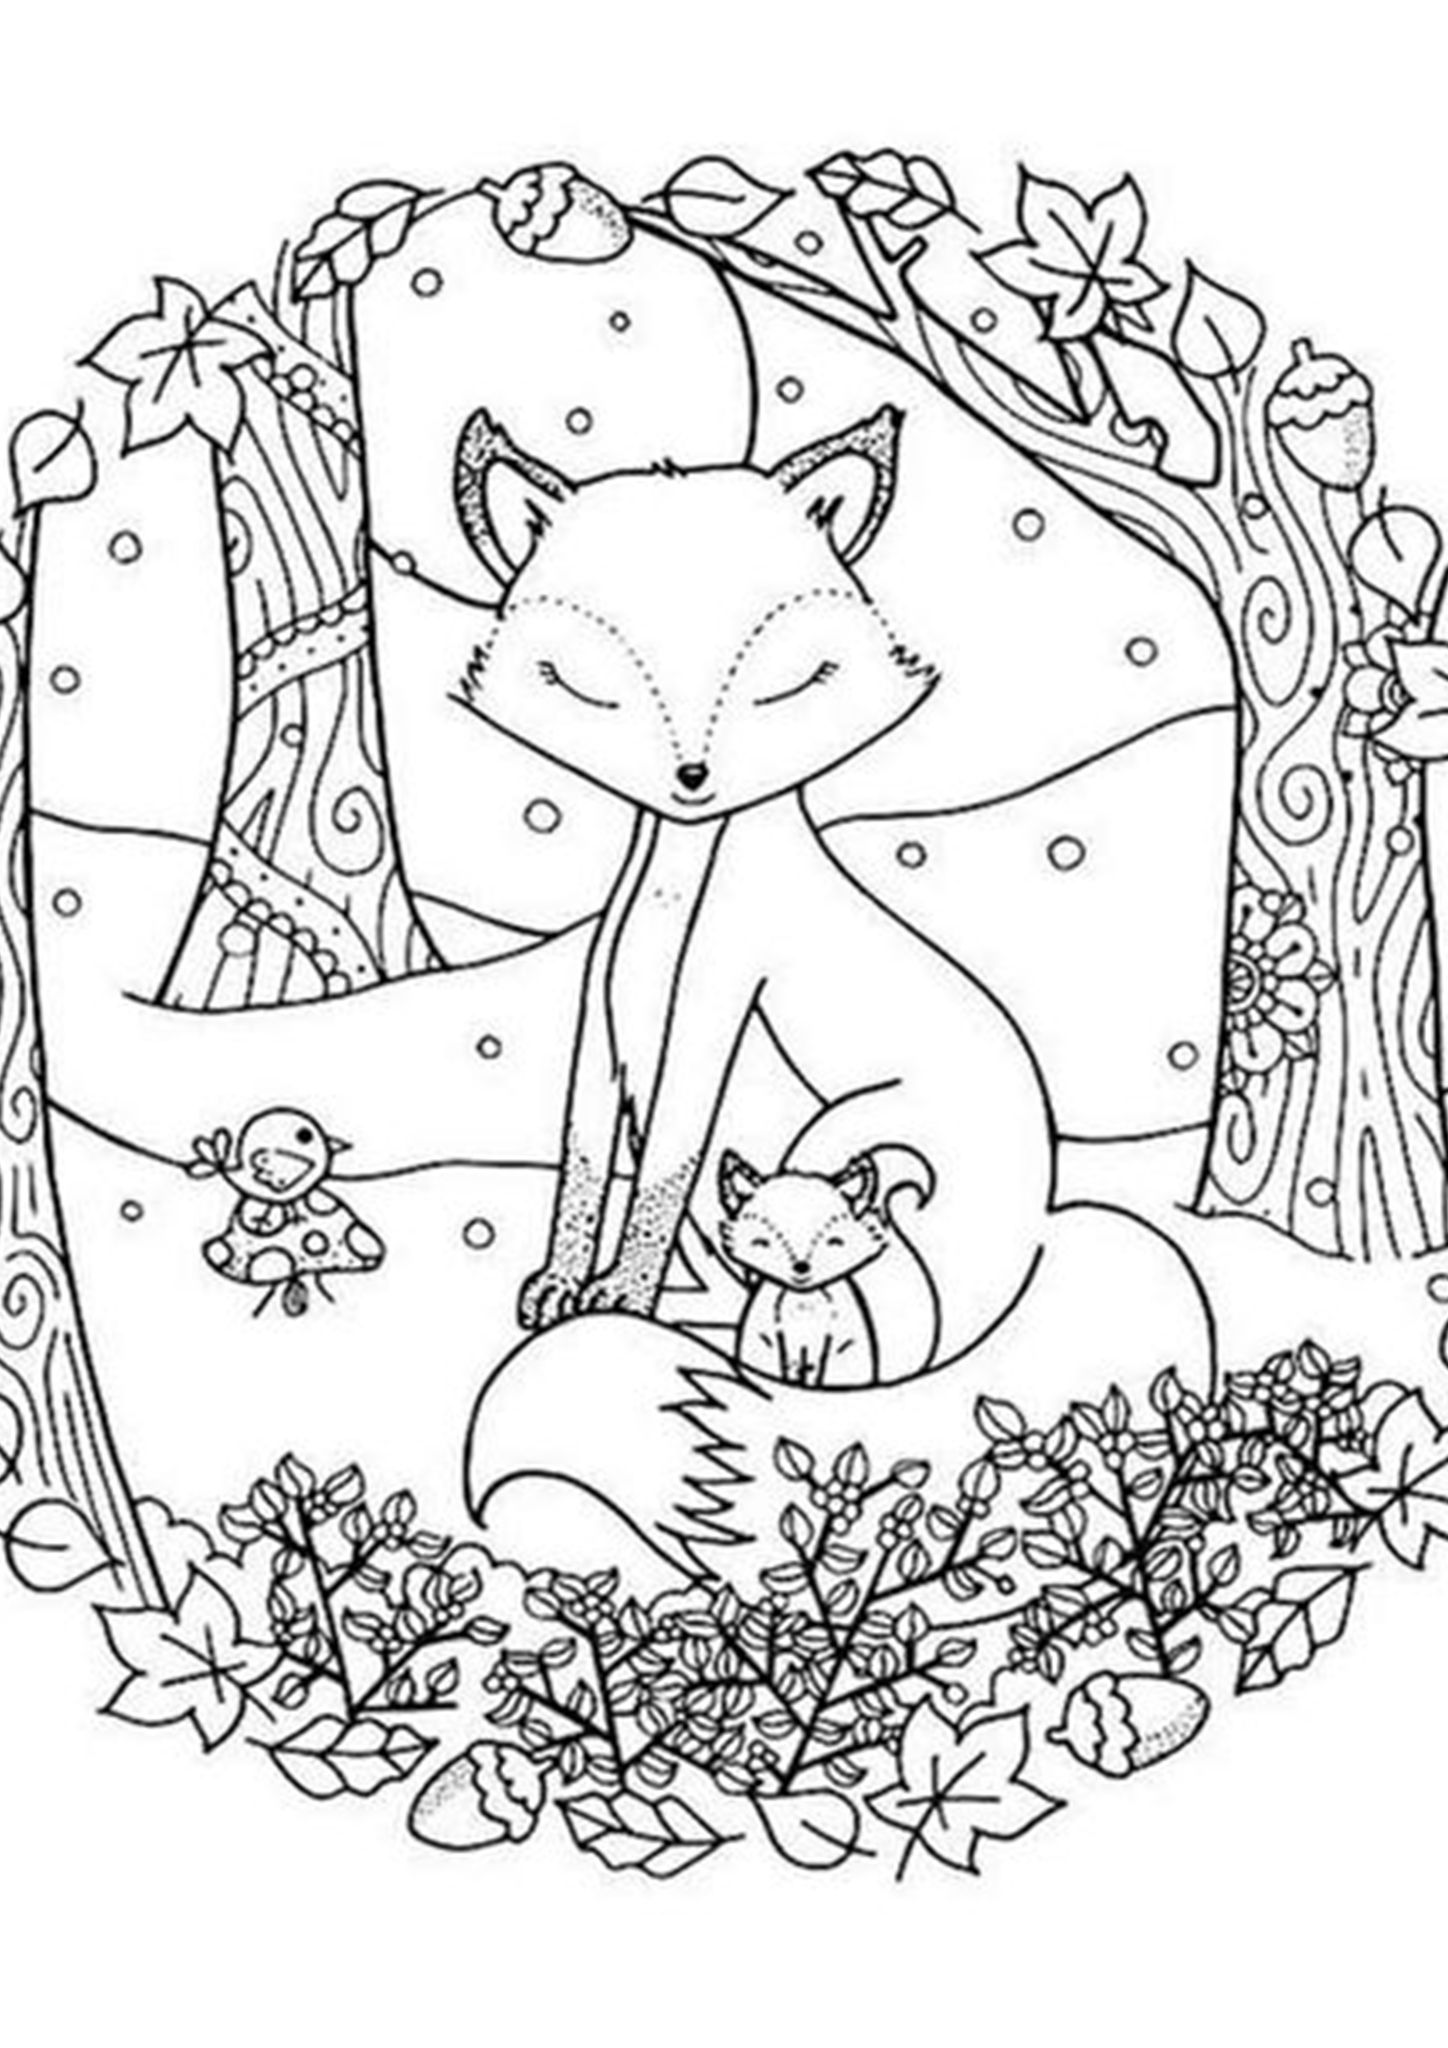 winter animal coloring pages free easy to print fox coloring pages in 2020 with animal winter pages coloring